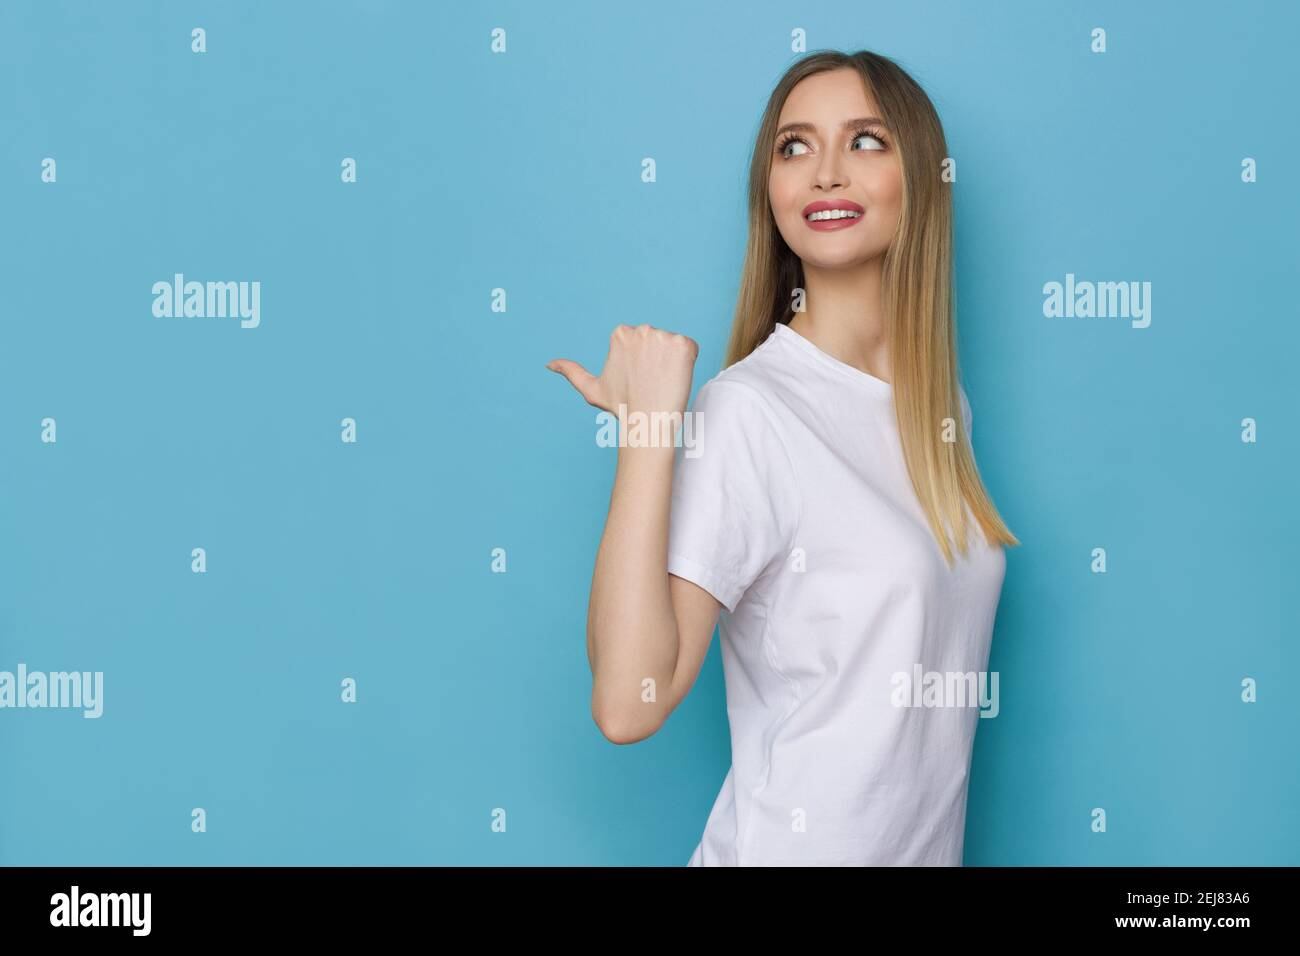 Smiling young woman in white shirt is pointing behind herself with thumb and looking away. Side view. Waist up studio shot on blue background. Stock Photo